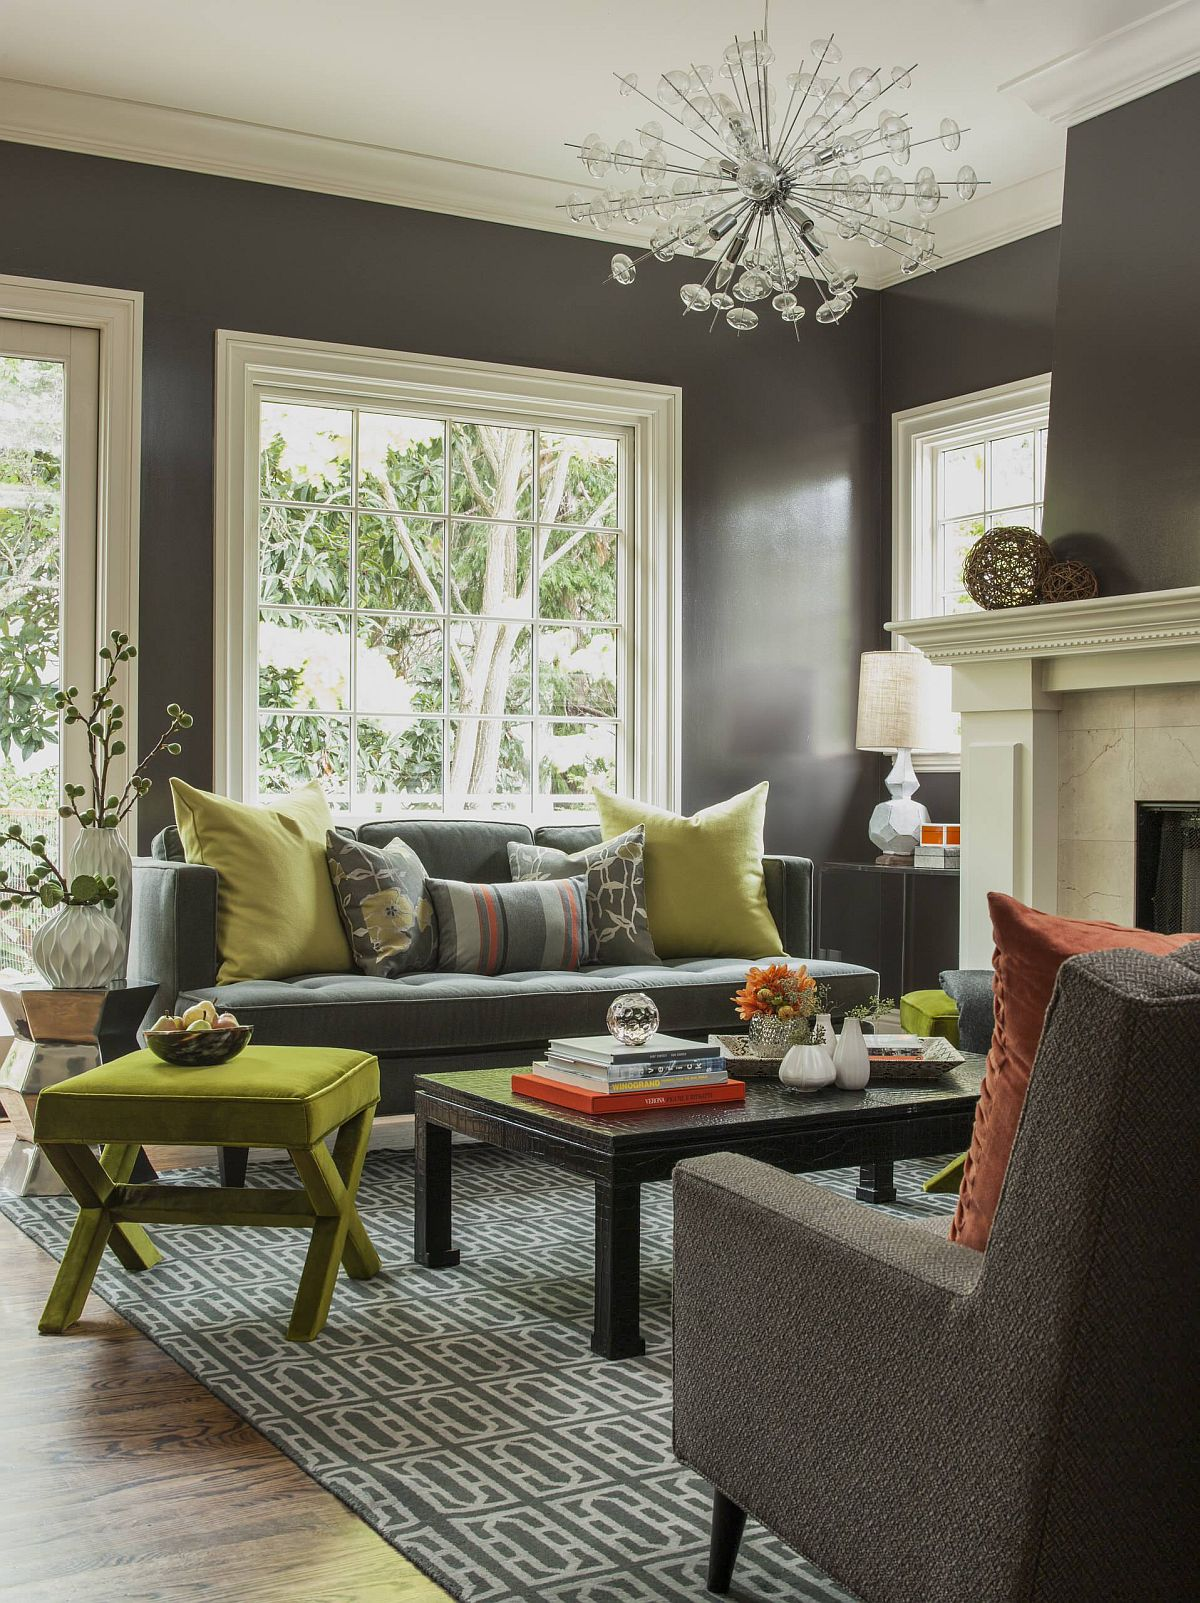 DIscover-the-right-colors-for-your-living-room-backdrop-and-accents-21776